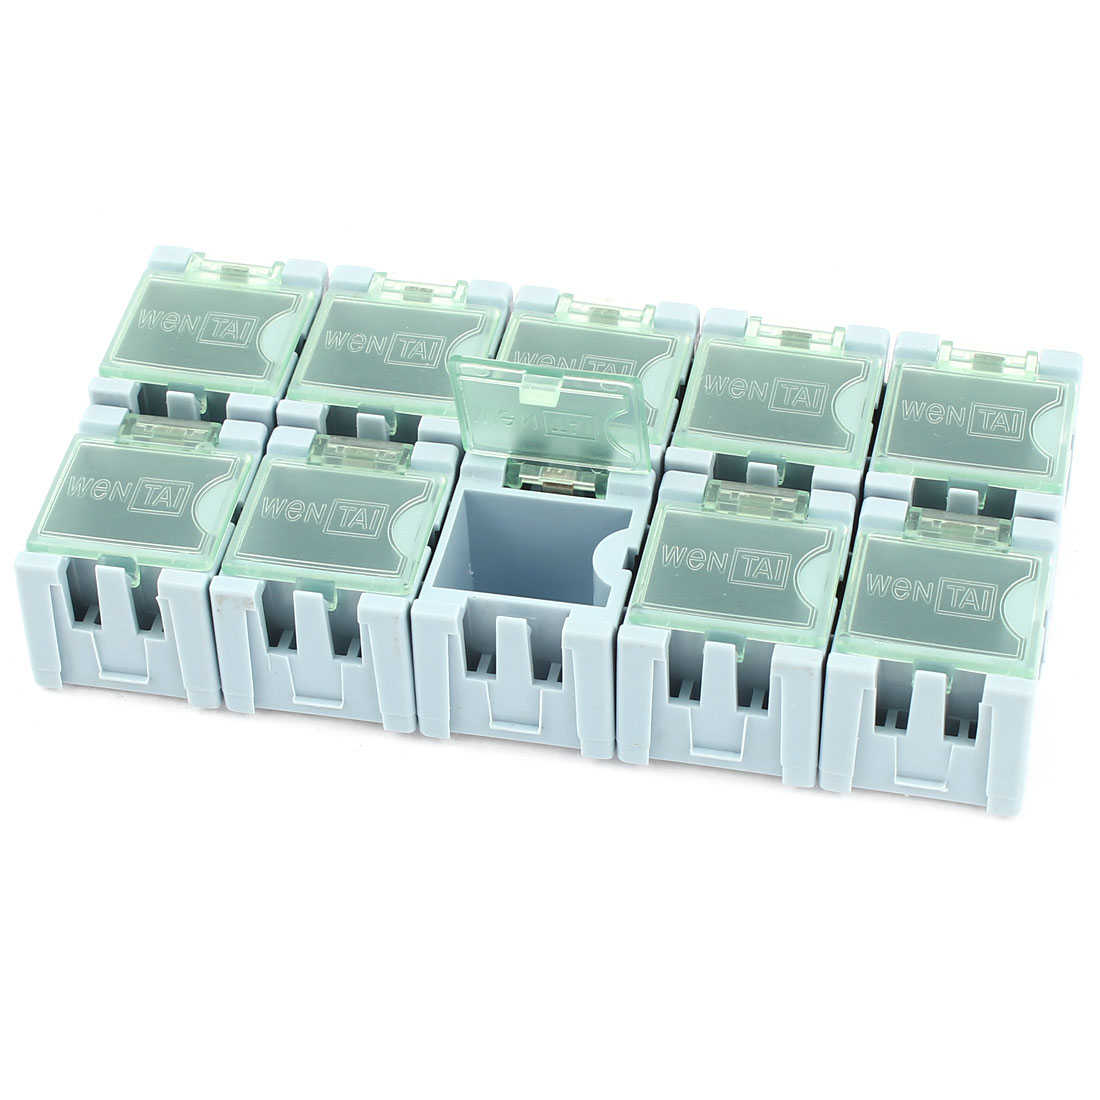 10 Pcs Plastic SMT SMD Electronic Components Storage Box Organizer